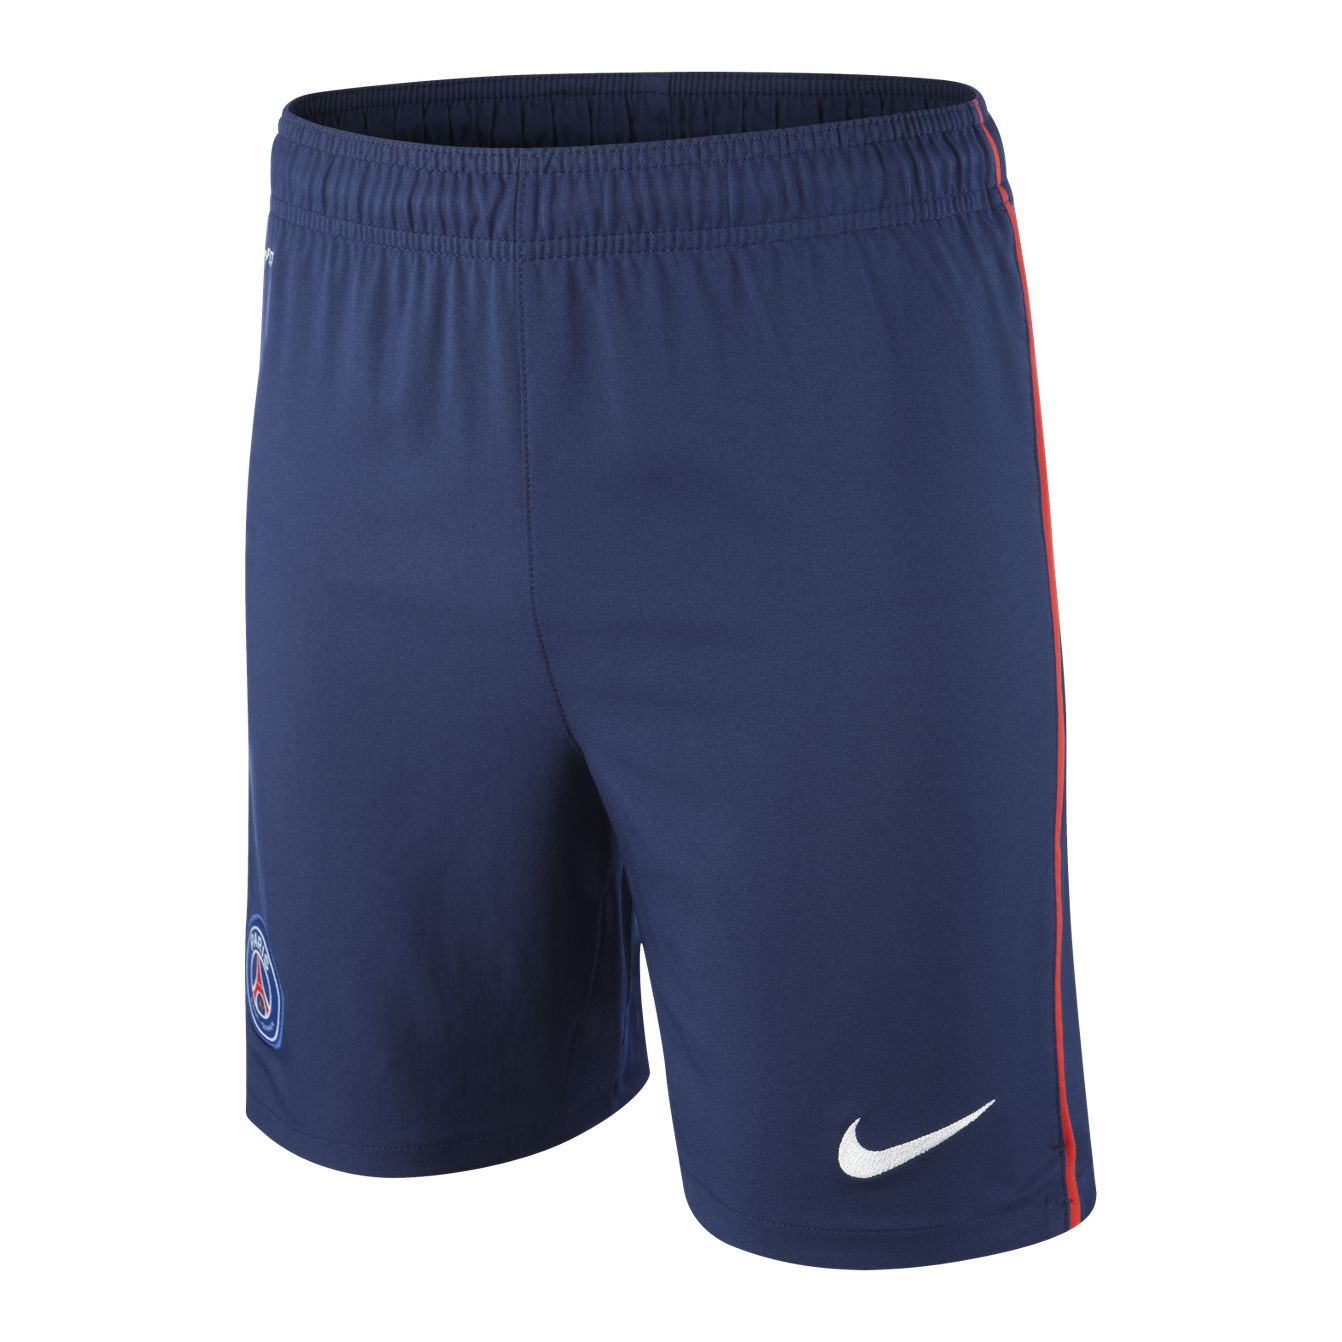 Paris saint-germain short woven blue 2013/14